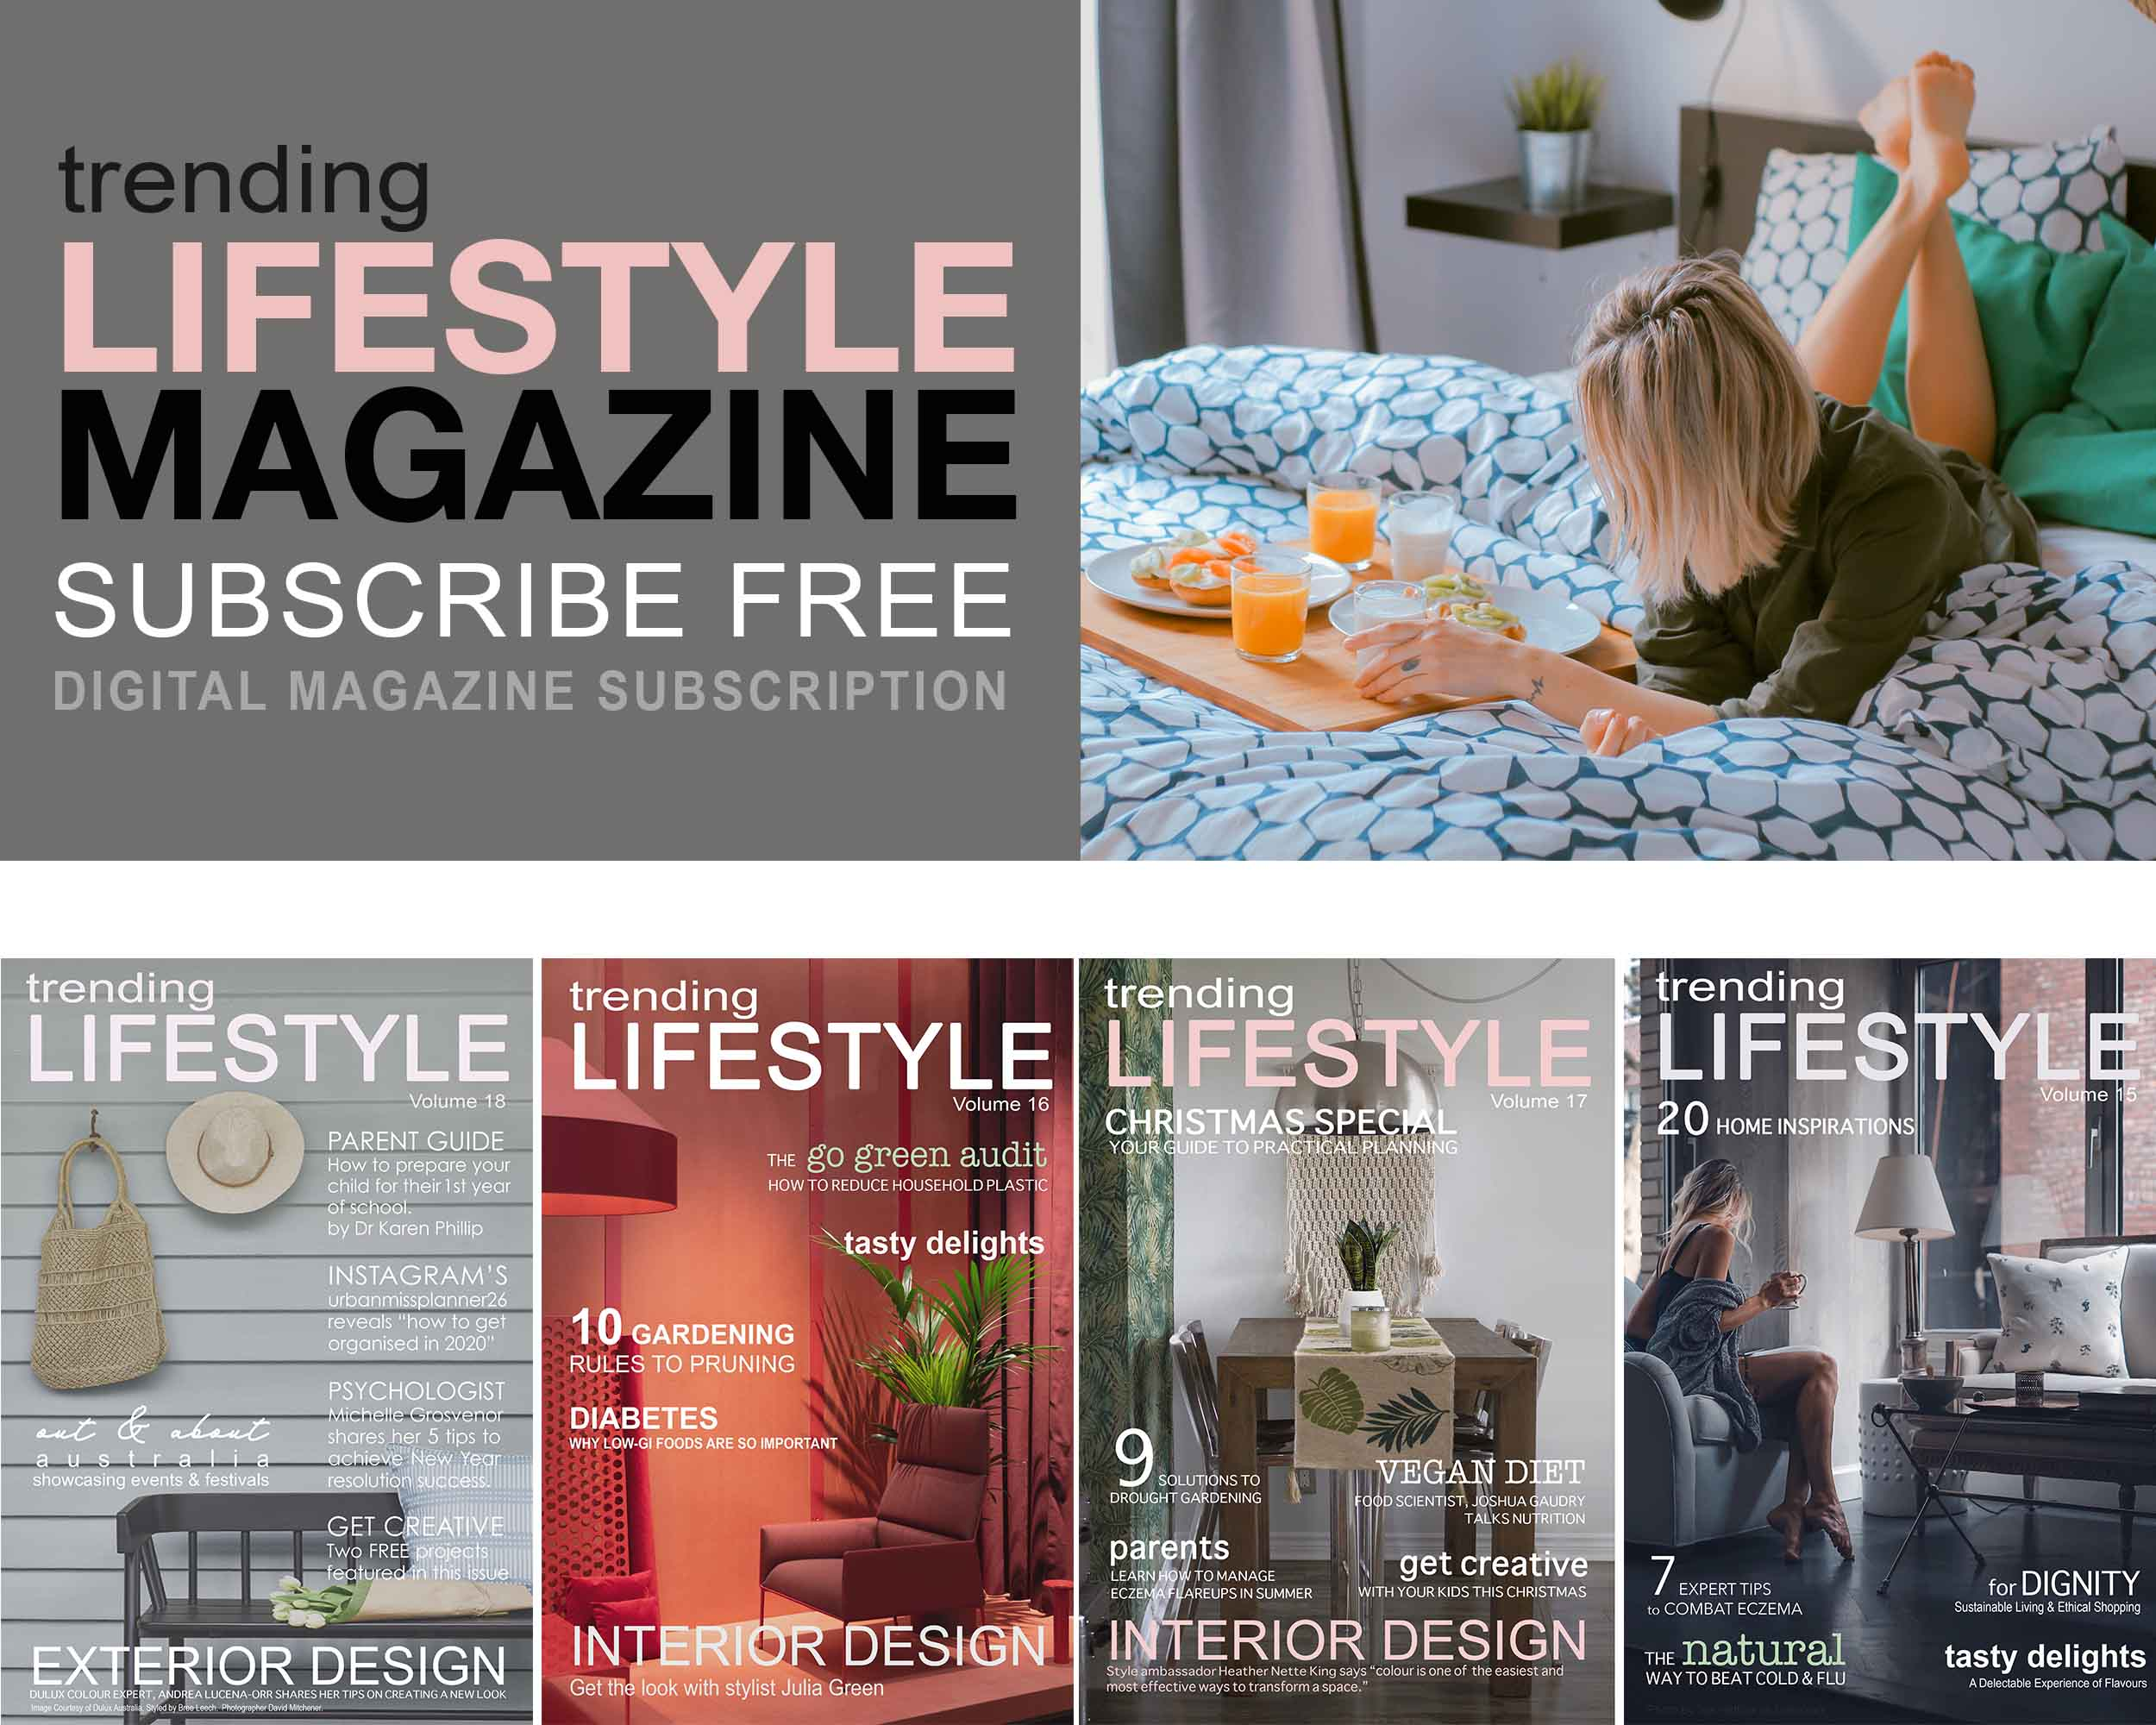 Trending Lifestyle Magazine Wellbeing